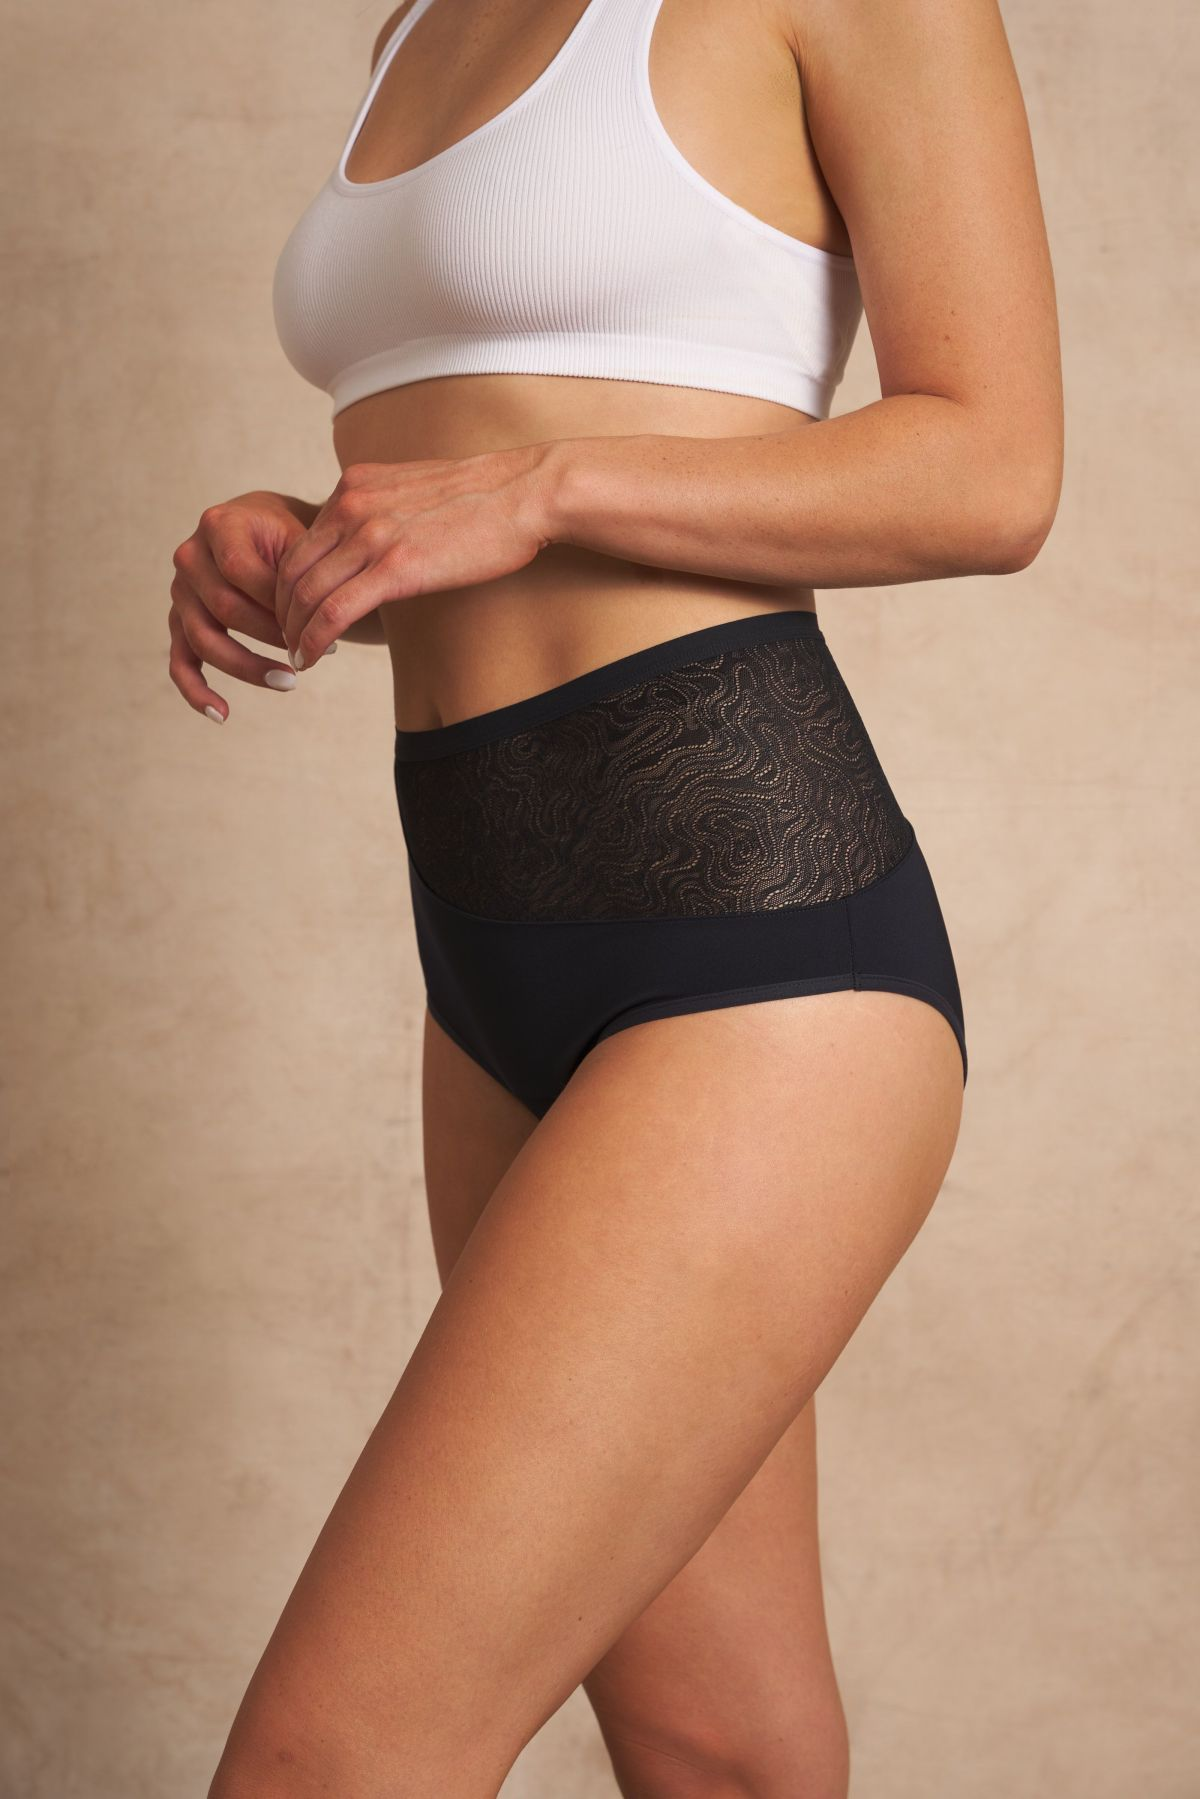 A guide to the best menstrual underwear